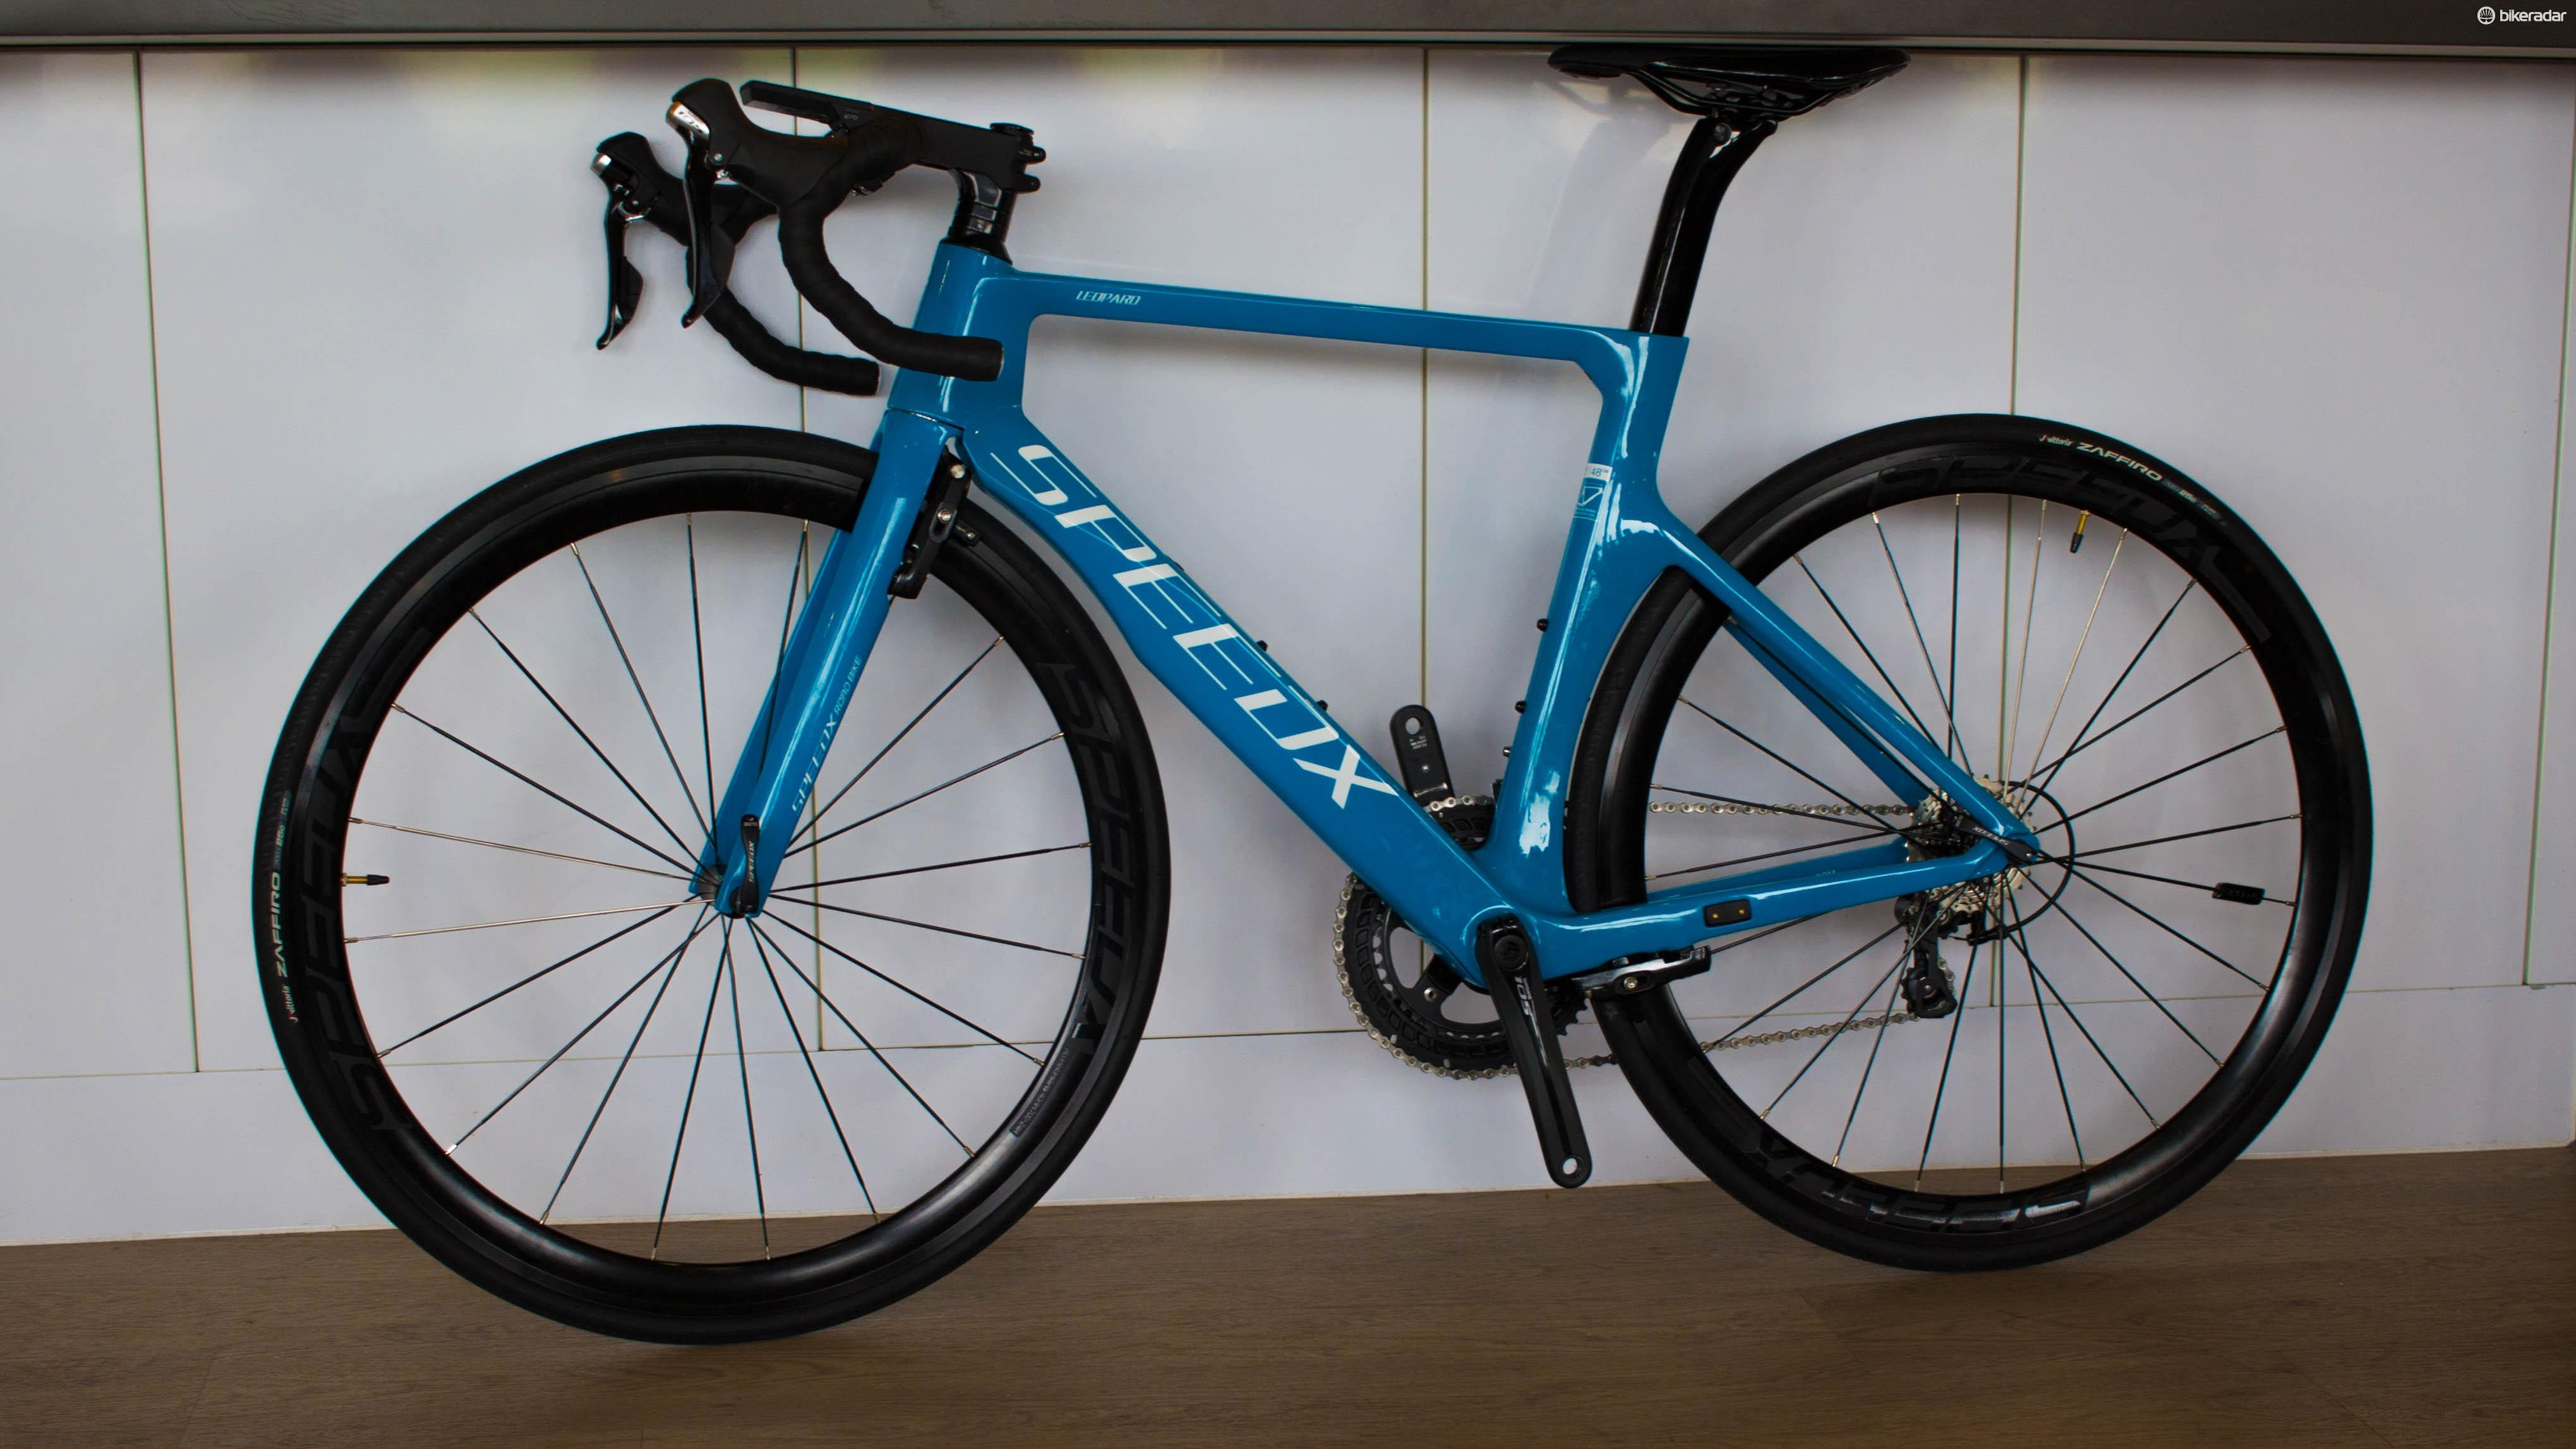 This is the SpeedX Leopard aero road bike, with integrated GPS bike computer and sensors